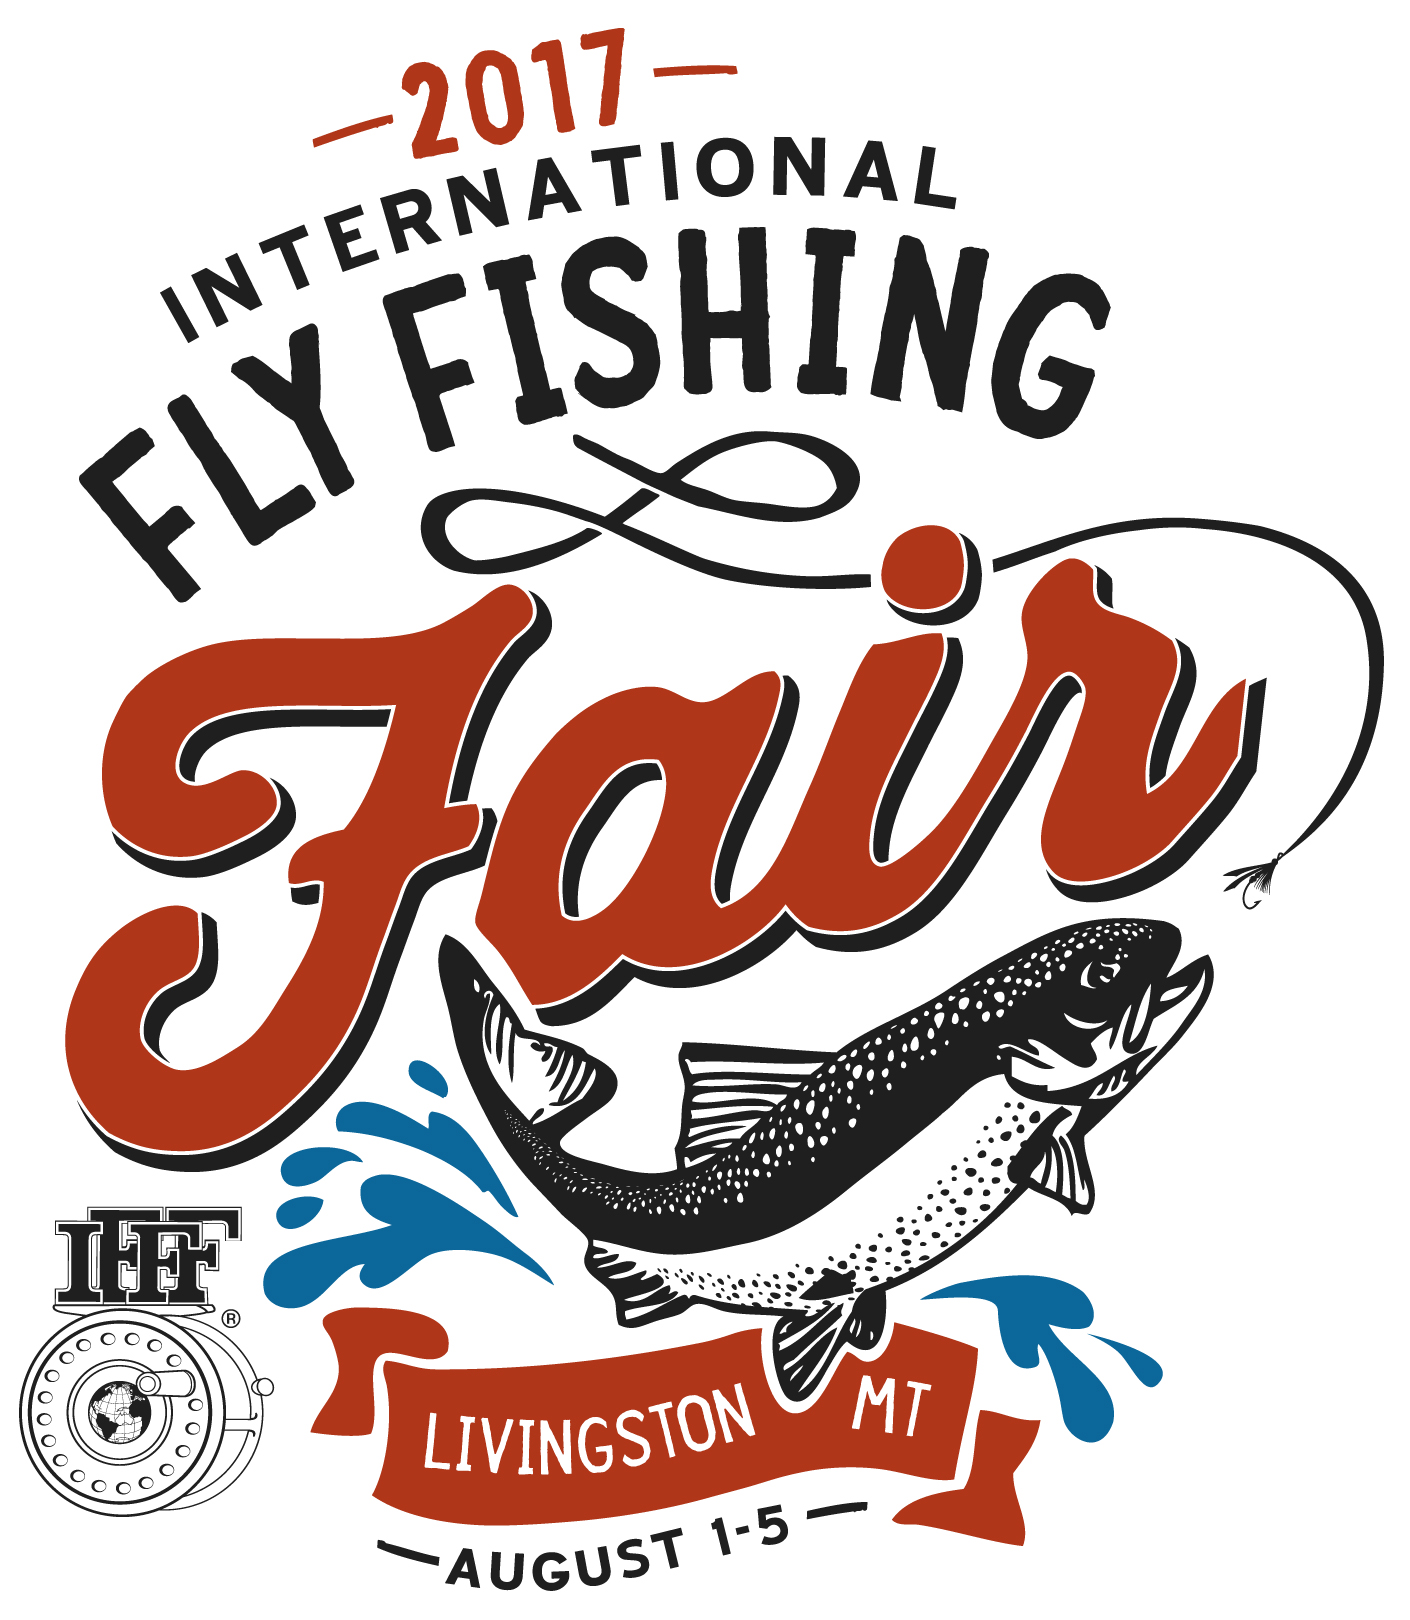 International Federation of Fly Fishers